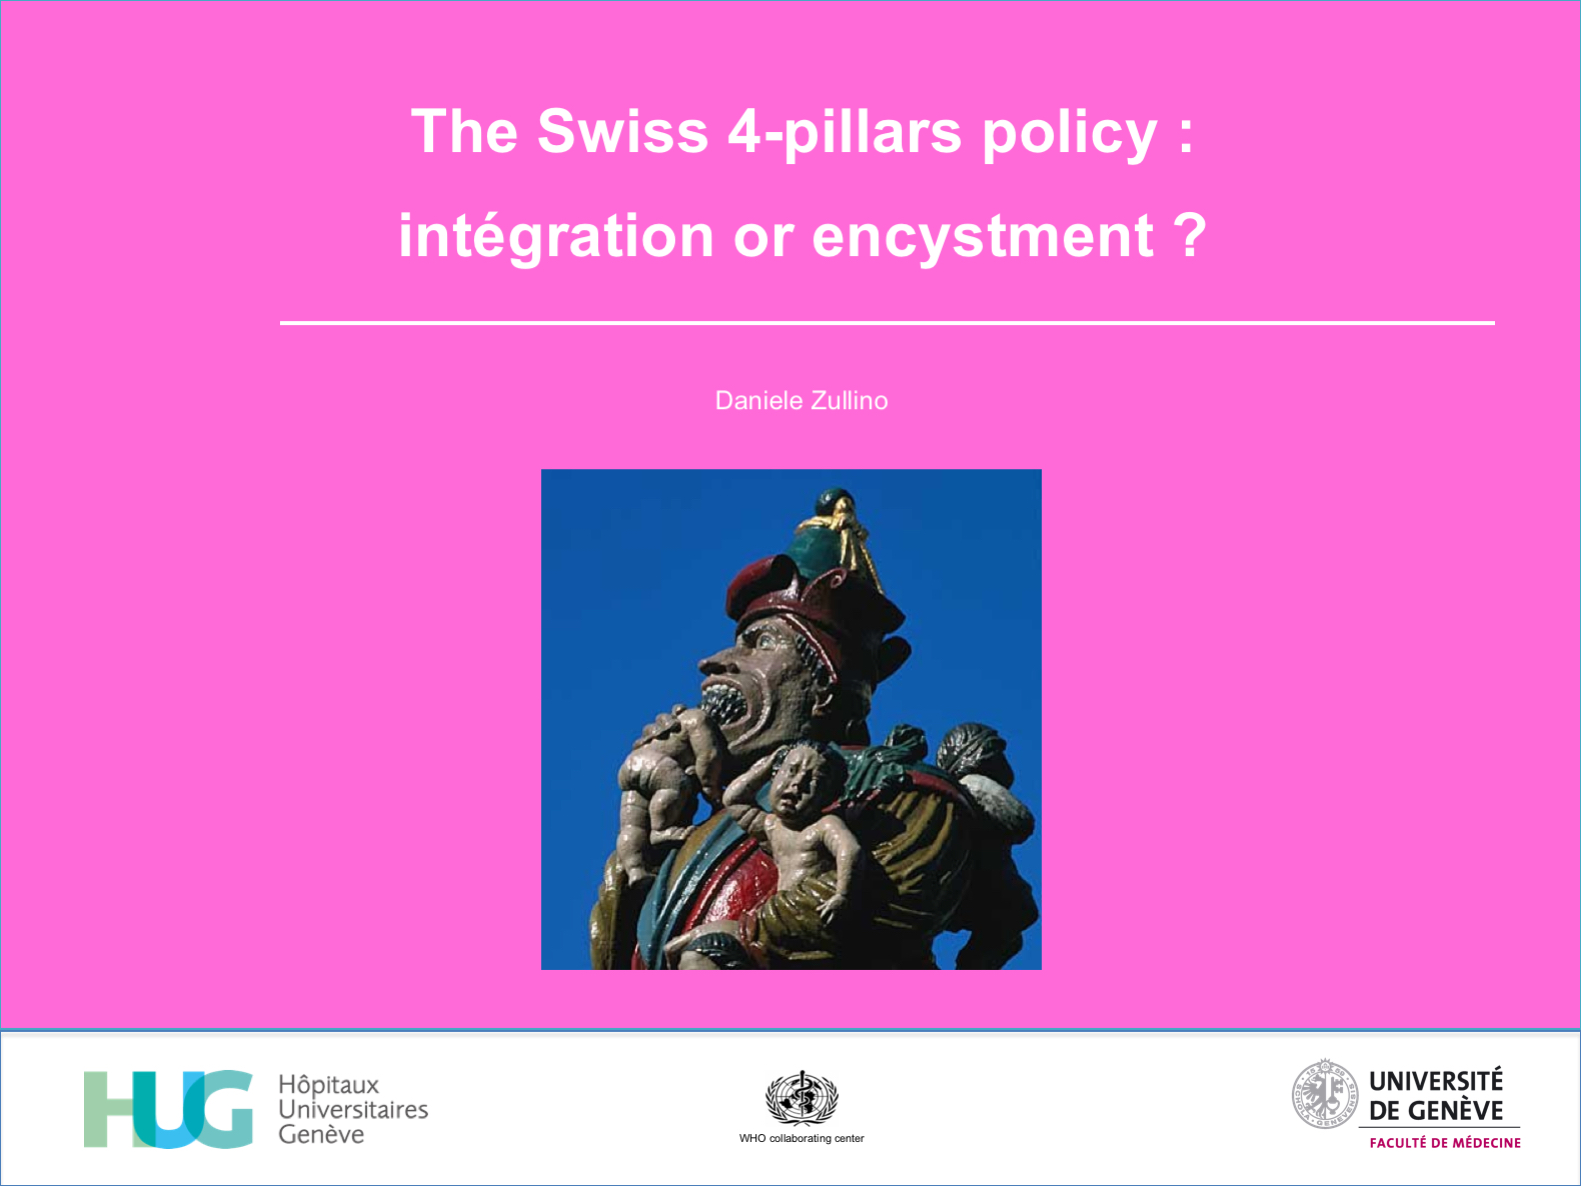 The Swiss 4-pillars policy :  intégration or encystment ?